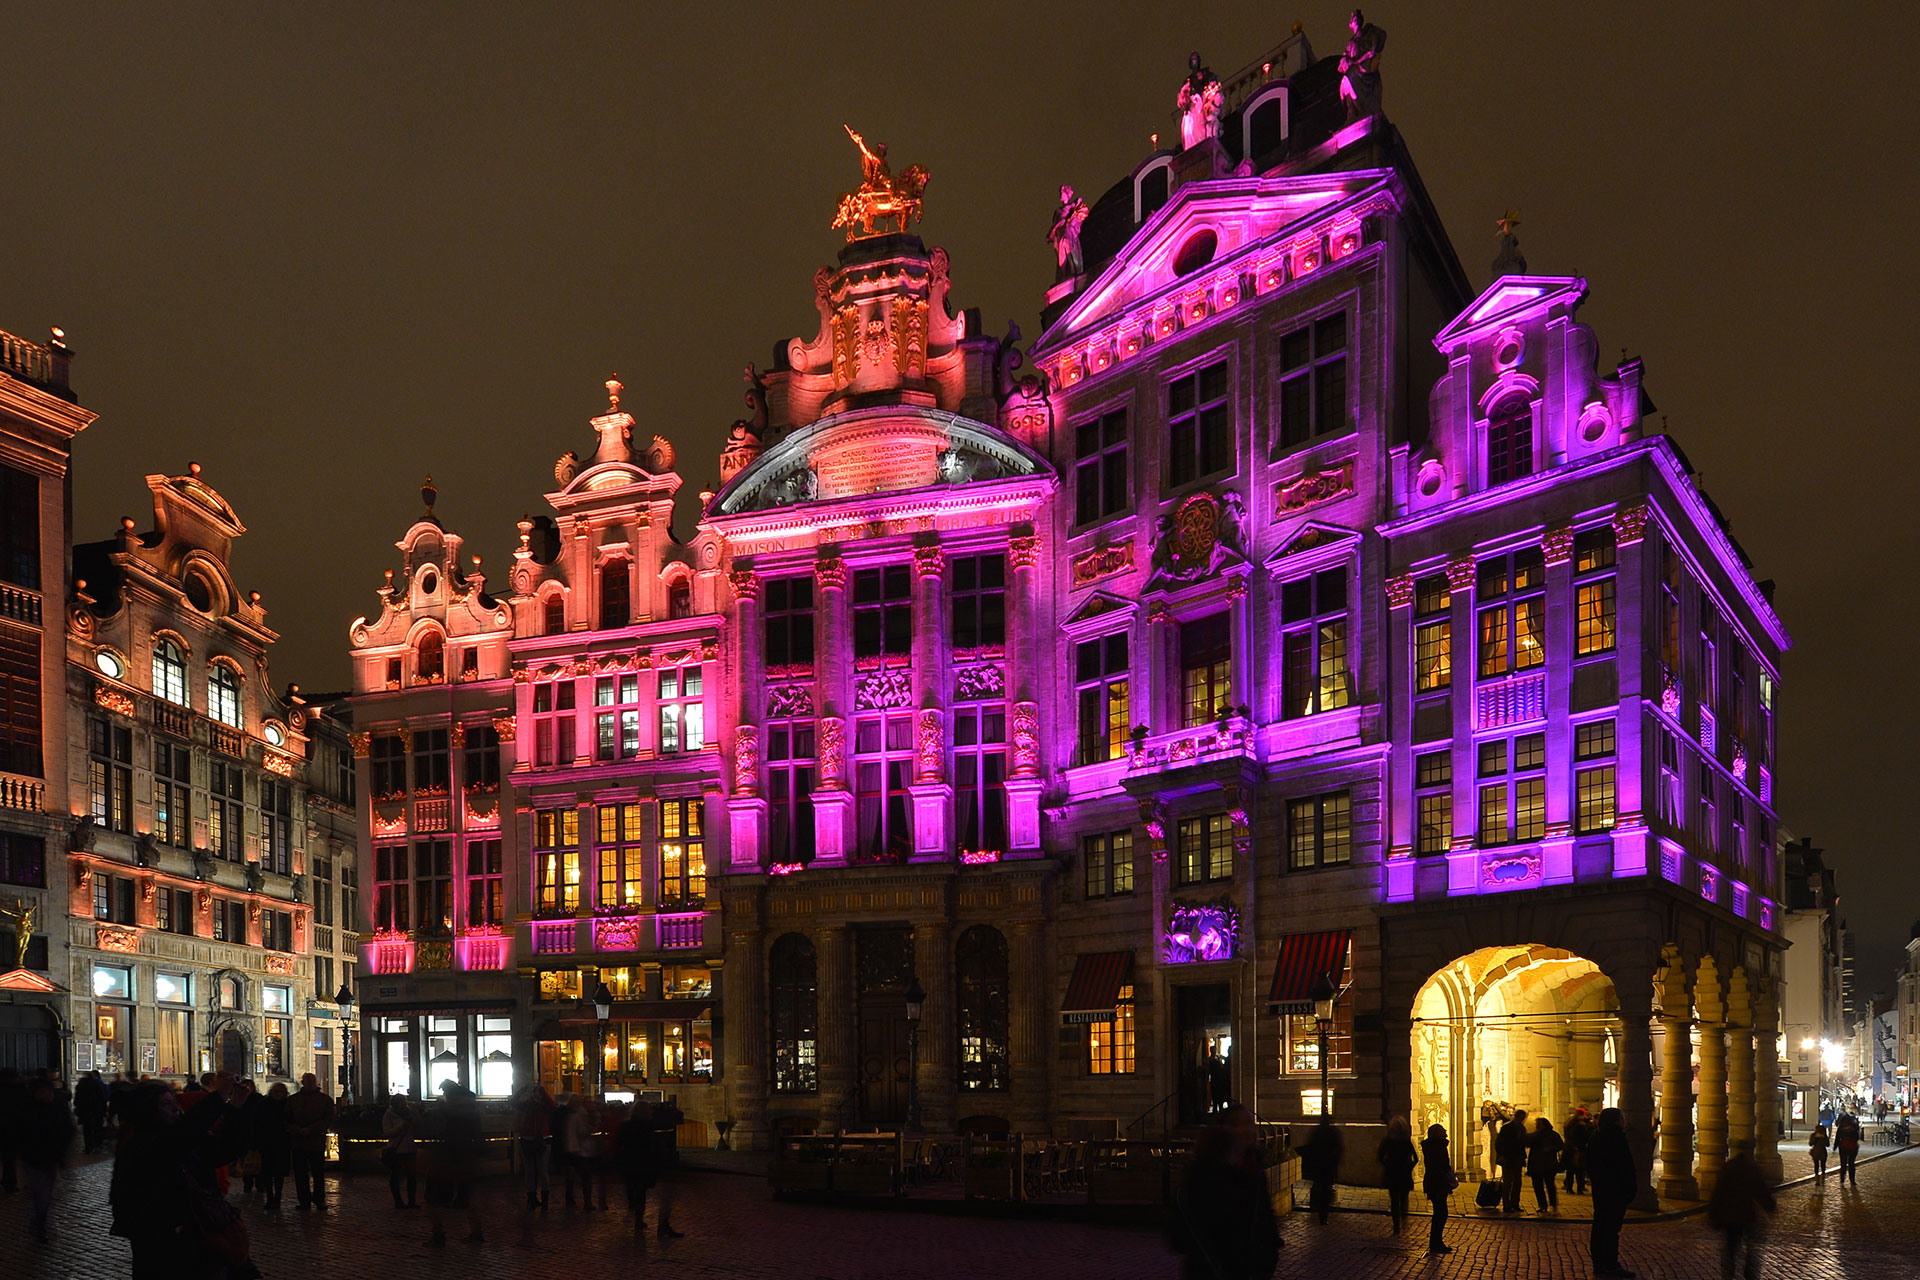 Dynamic lighting scheme places Grand Place at the heart of Brussels, highlighting the city's heritage